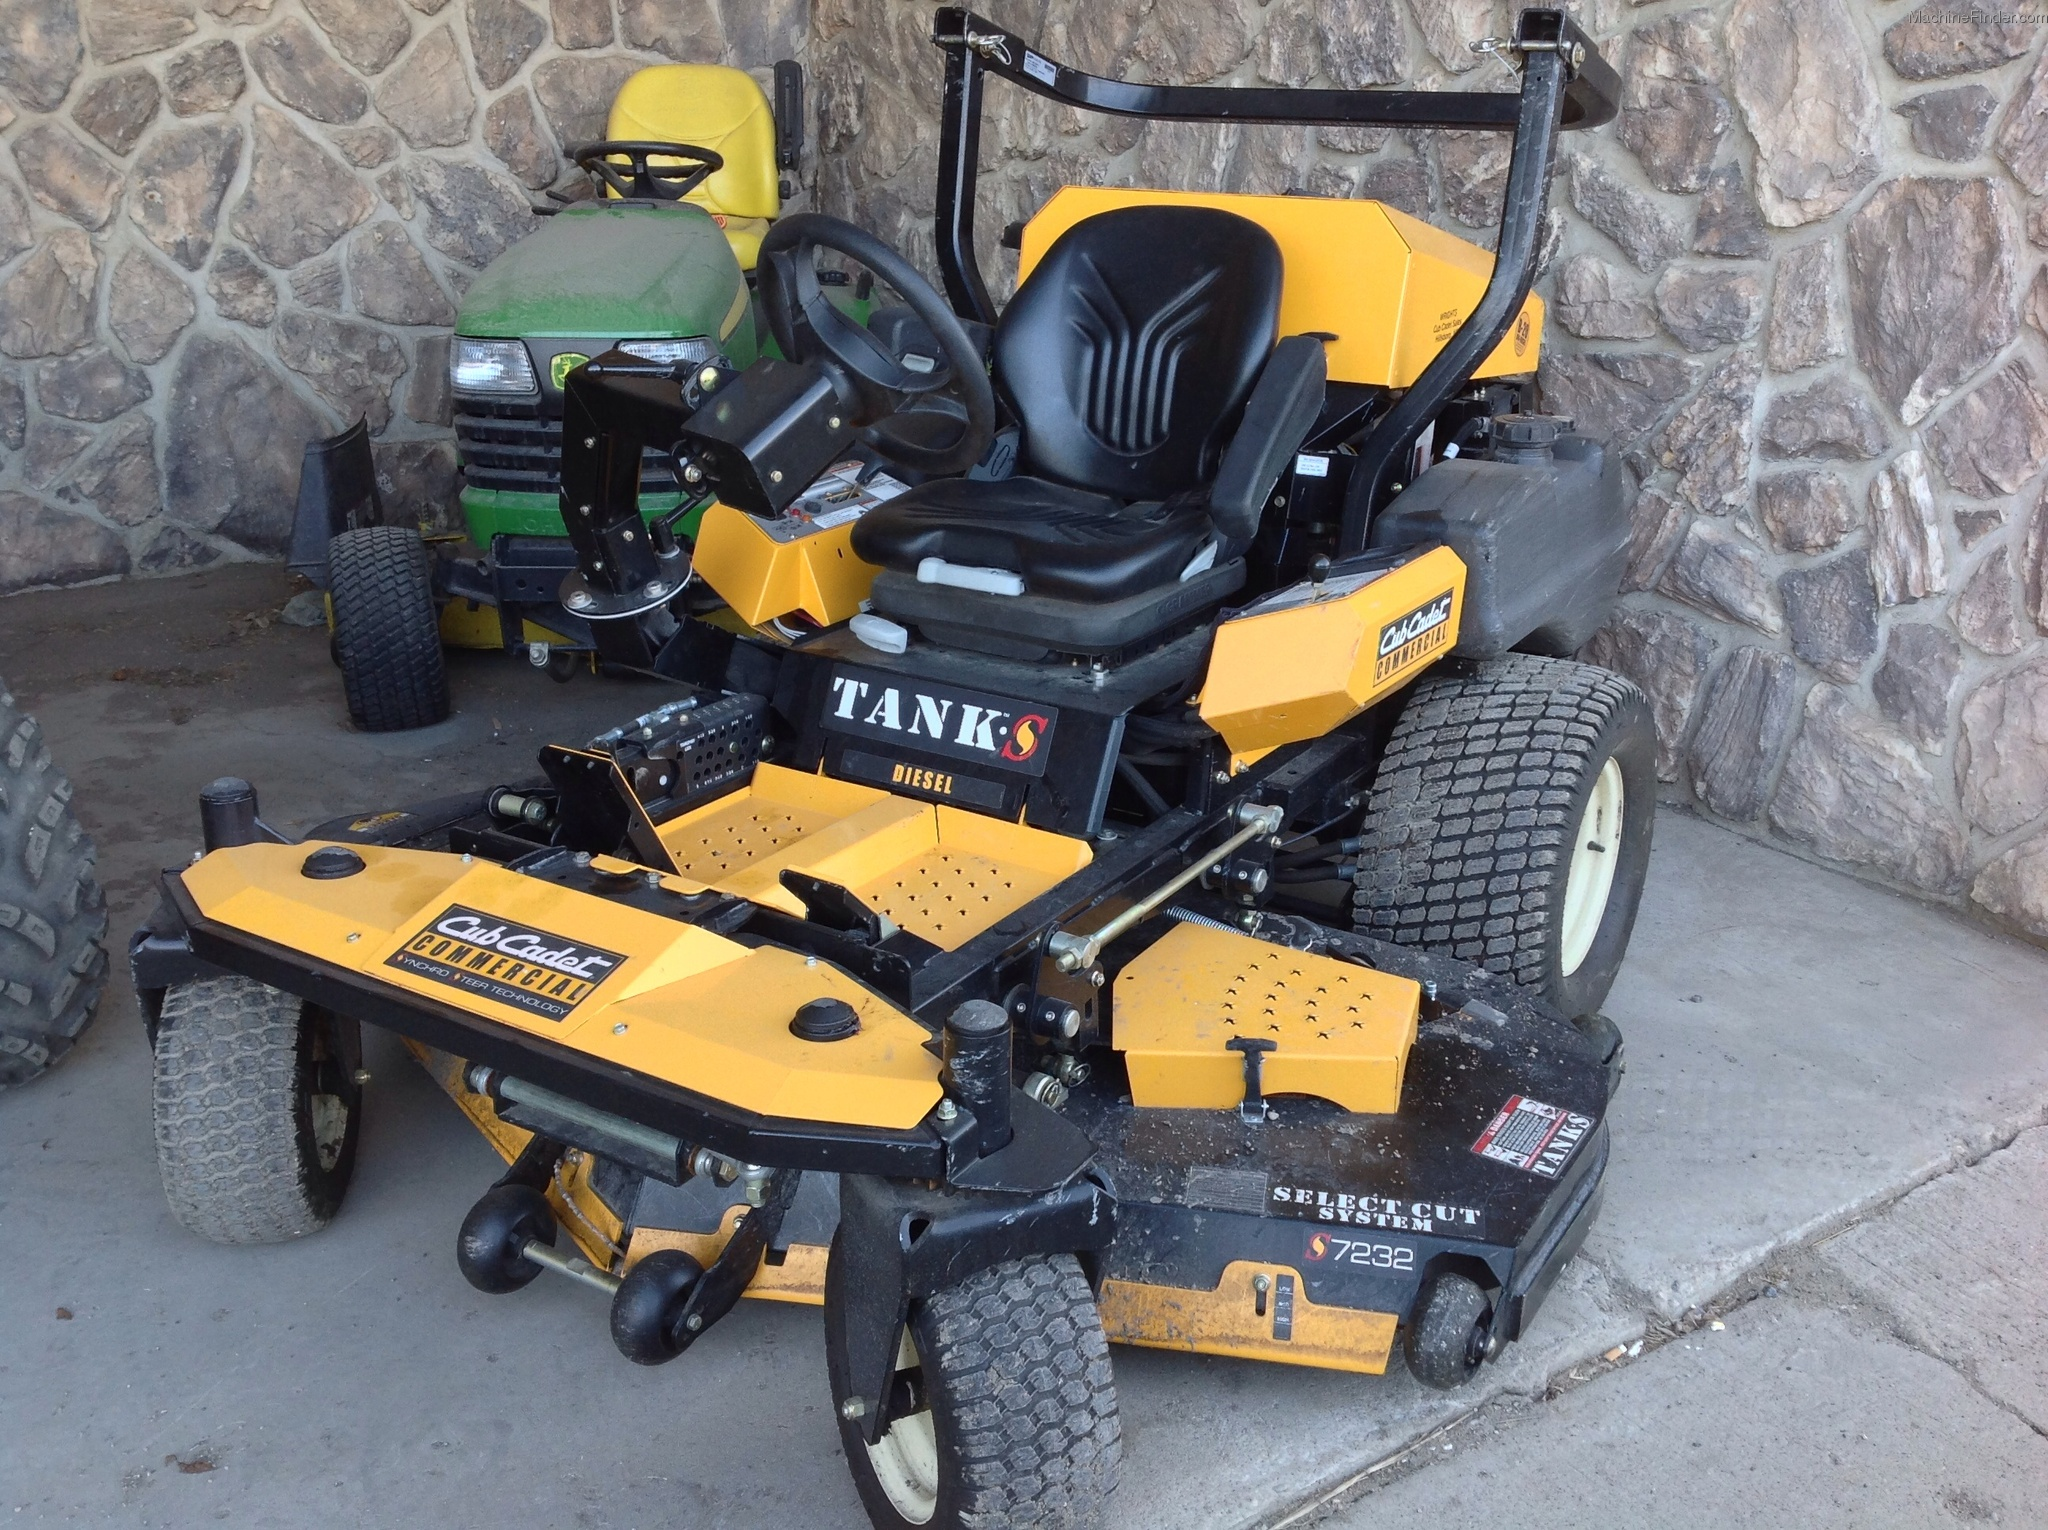 Cub Cadet Lawn Mowers Dealers : Cub cadet d lawn garden and commercial mowing